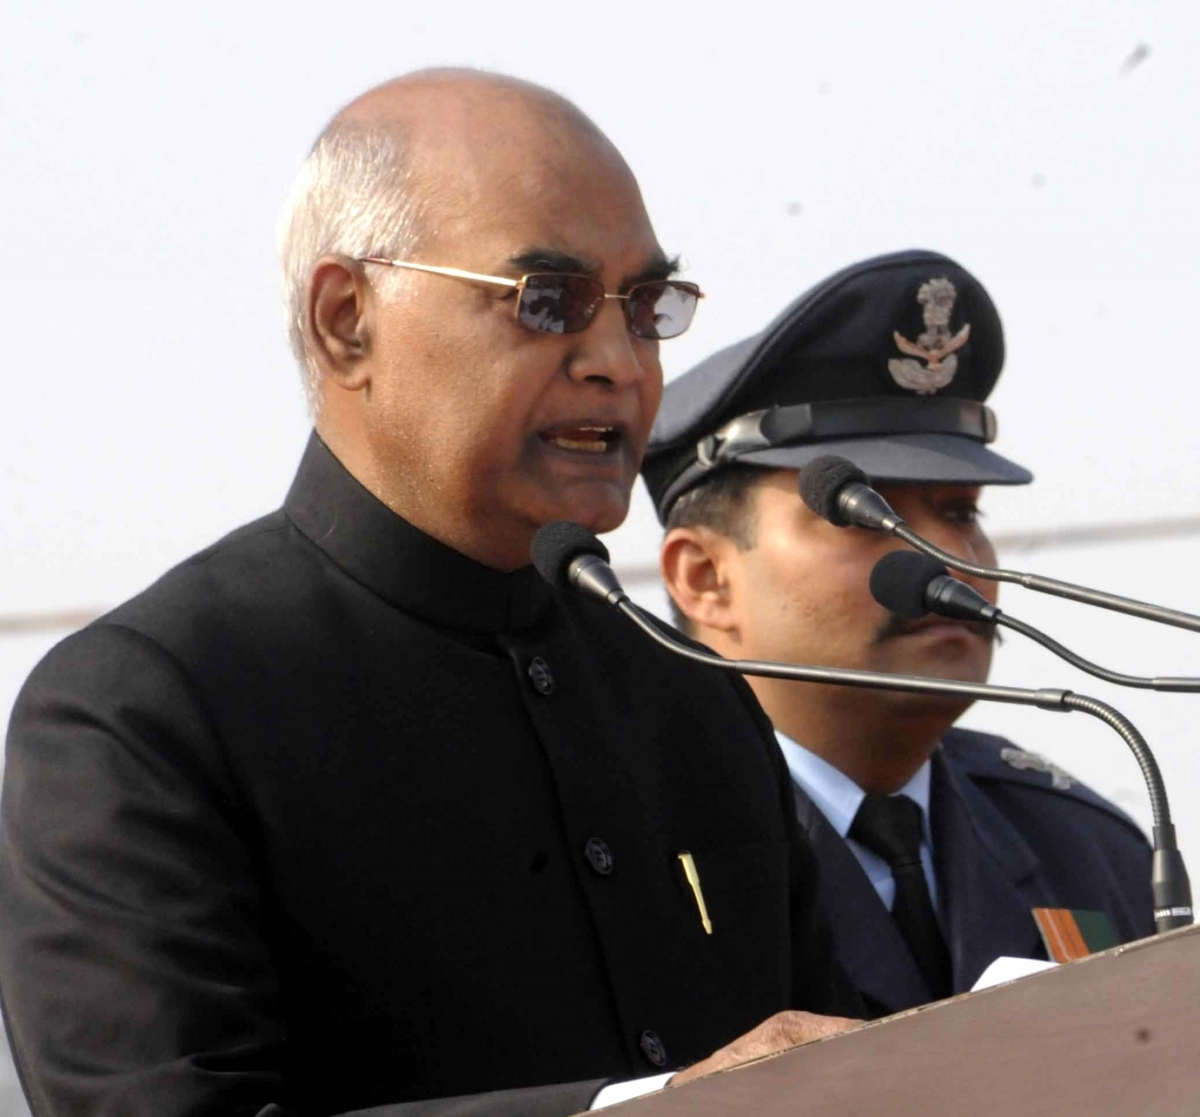 India gets its second Dalit president: Ram Nath Kovind 3